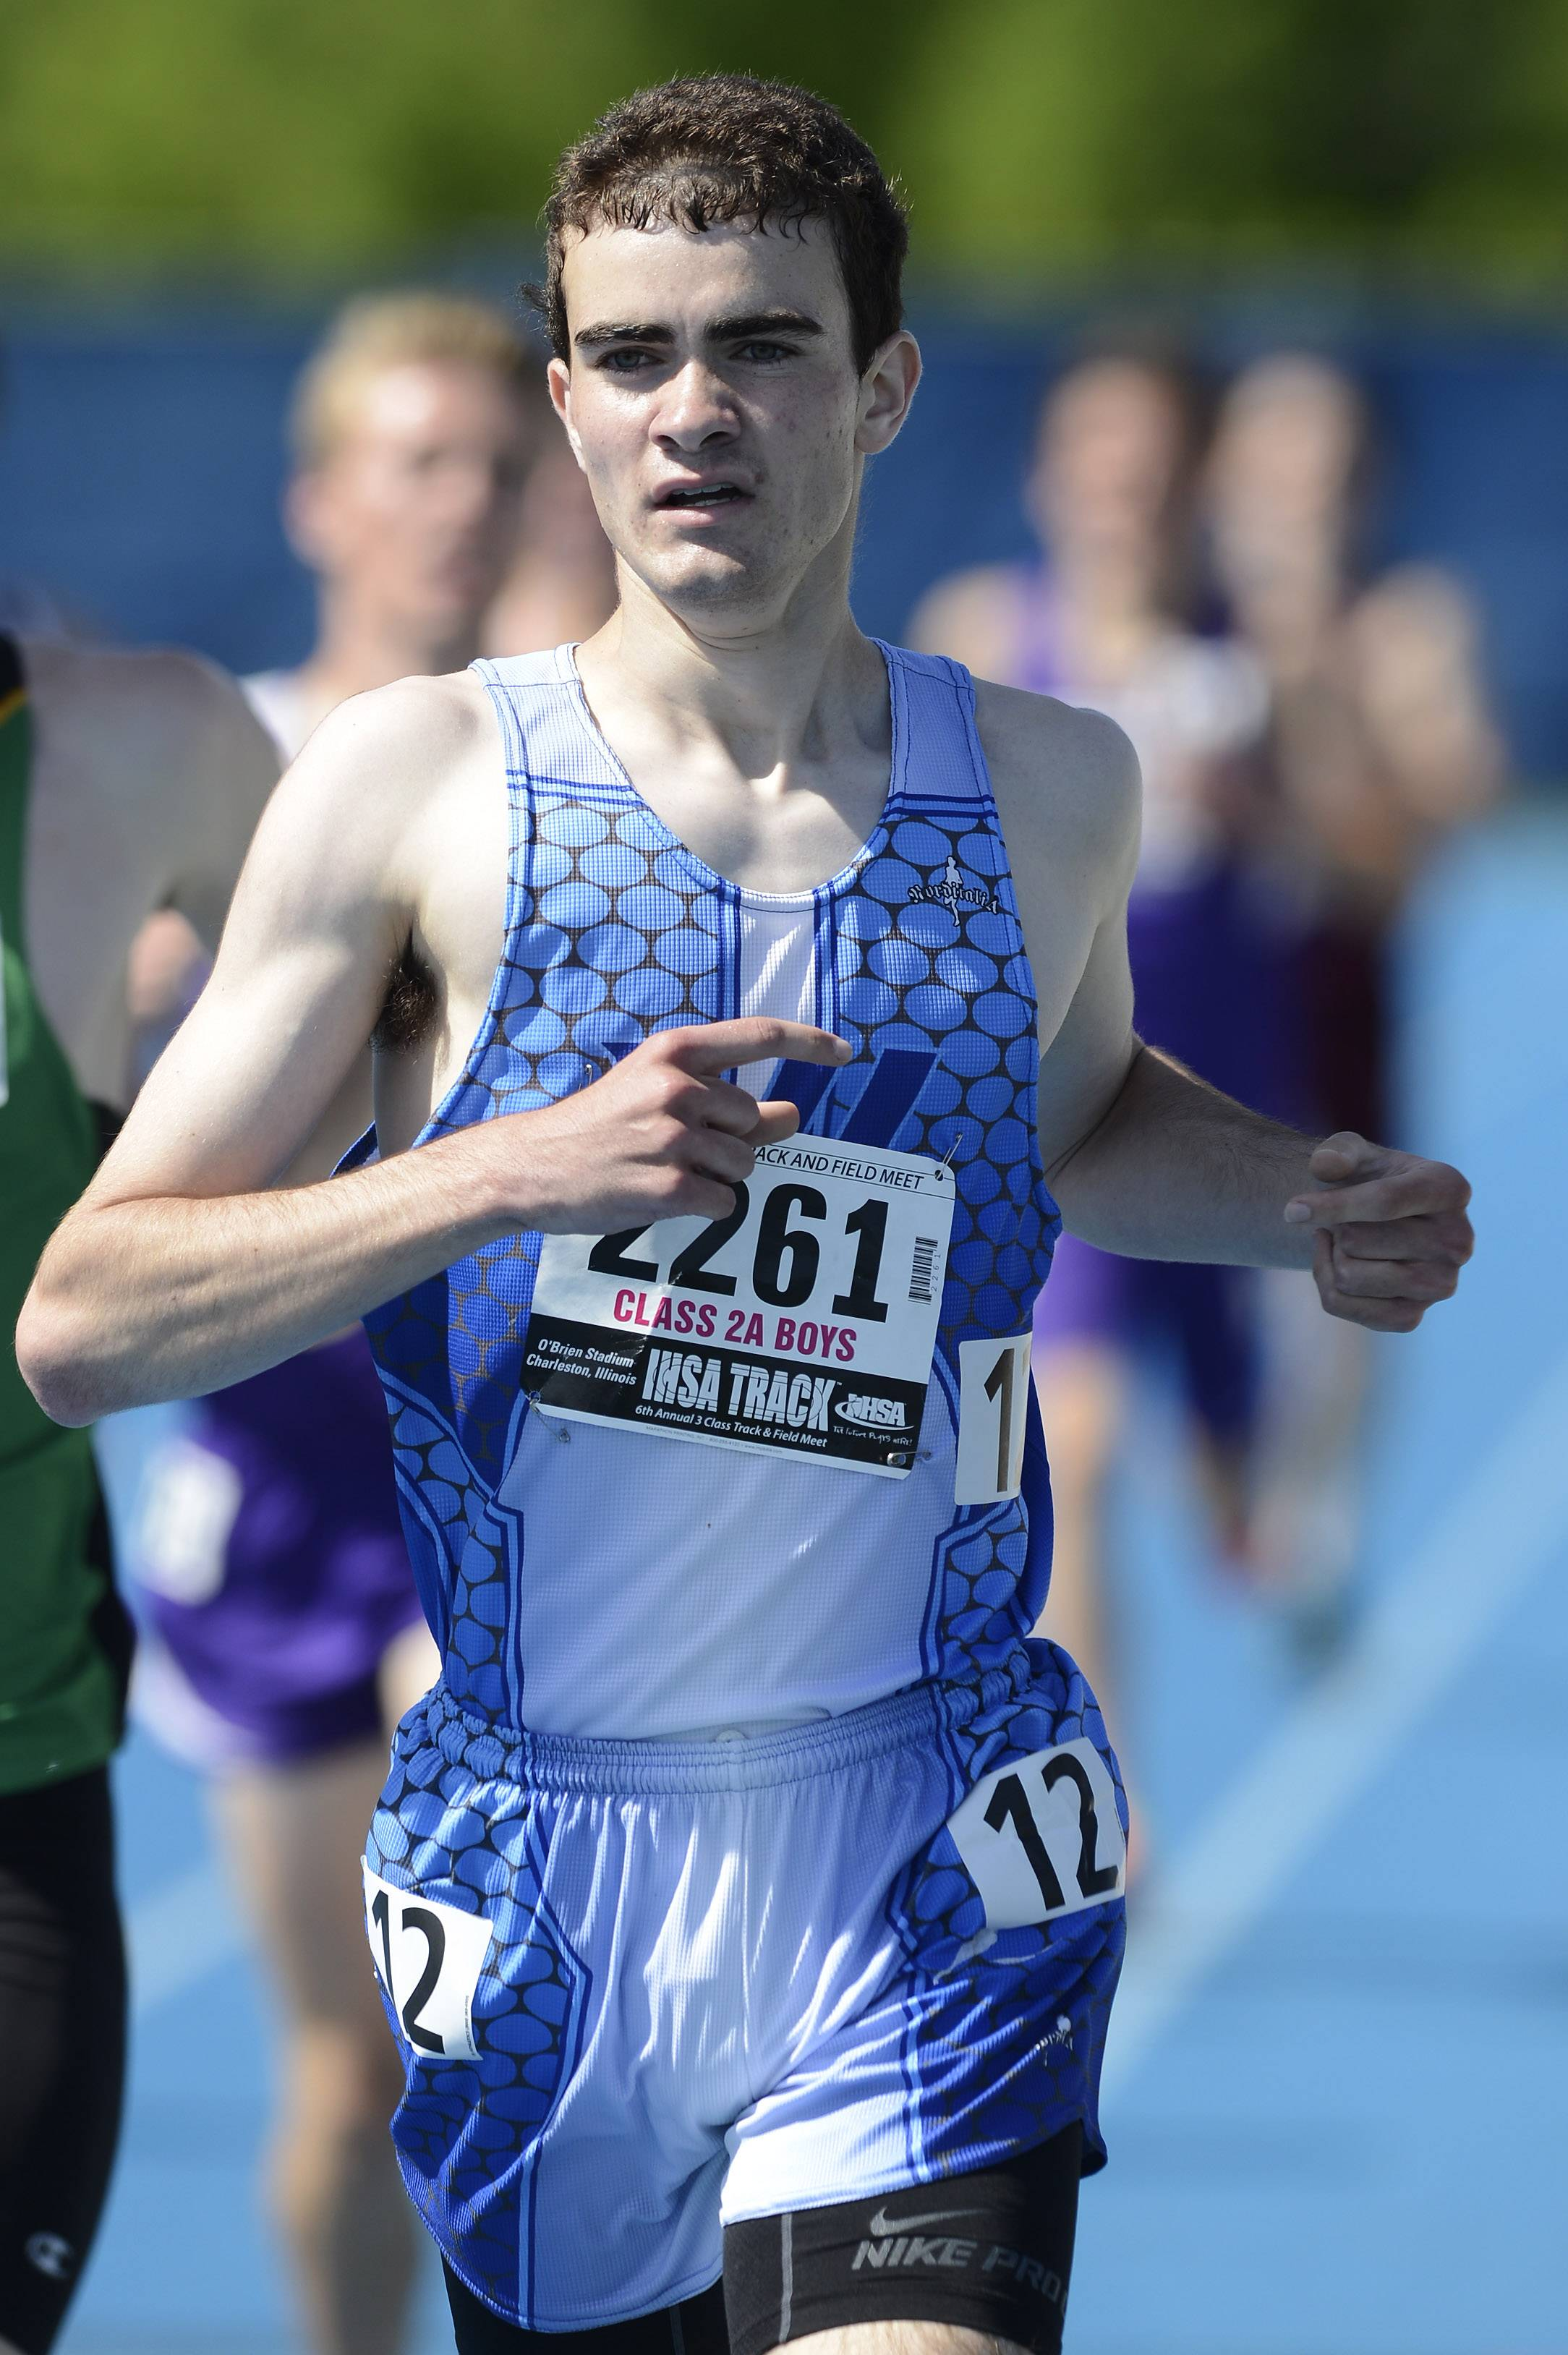 Vernon Hills' Ben Mohrdieck wins the 1,600-meter run during the boys class 2A state track and field finals in Charleston Saturday.